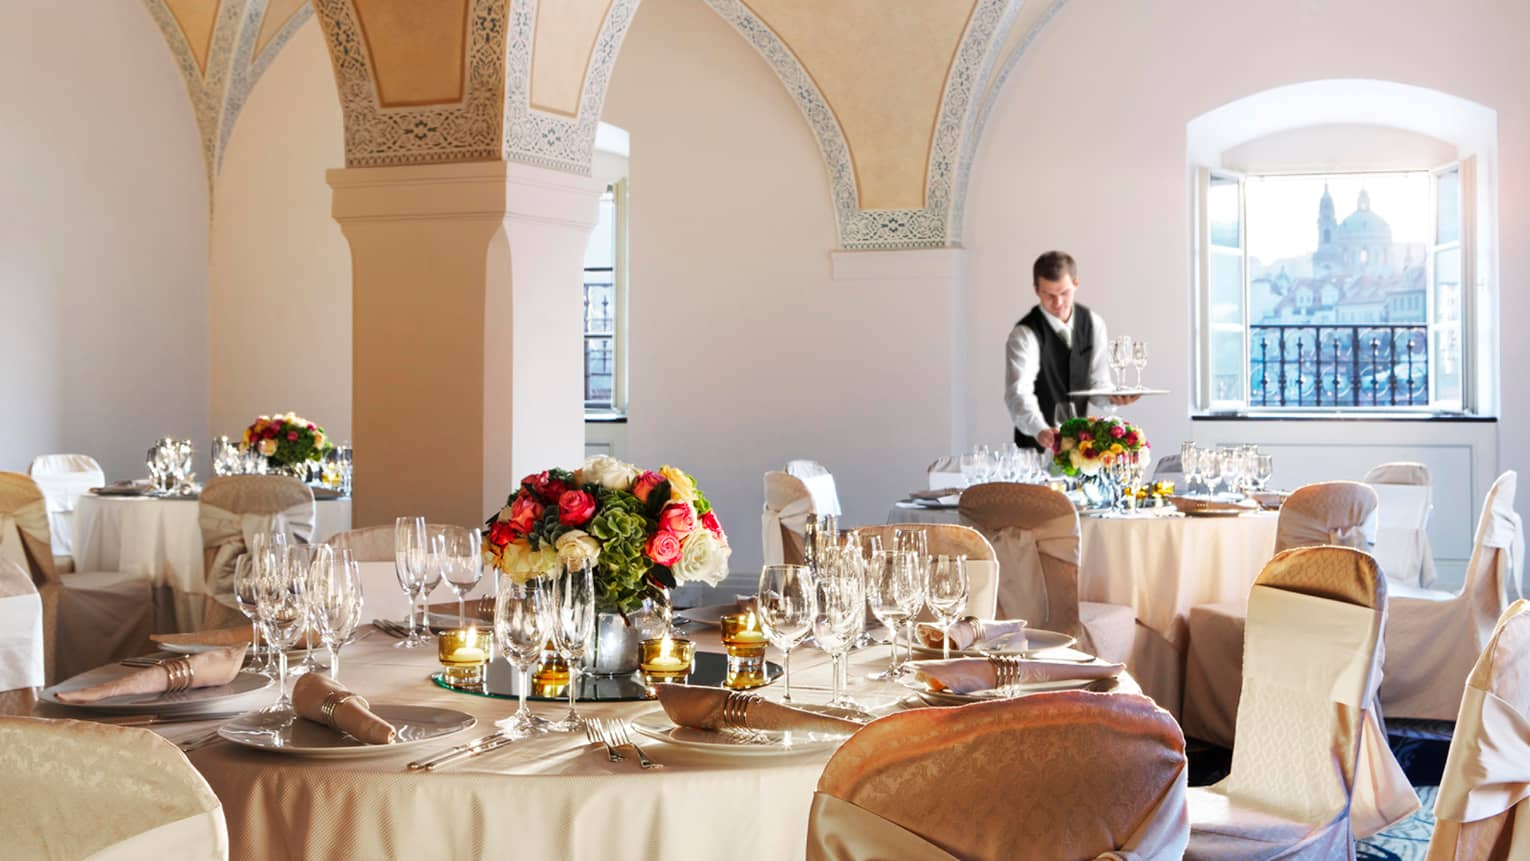 Server sets round formal banquet table under vaulted ceilings in Vltava Meeting Room